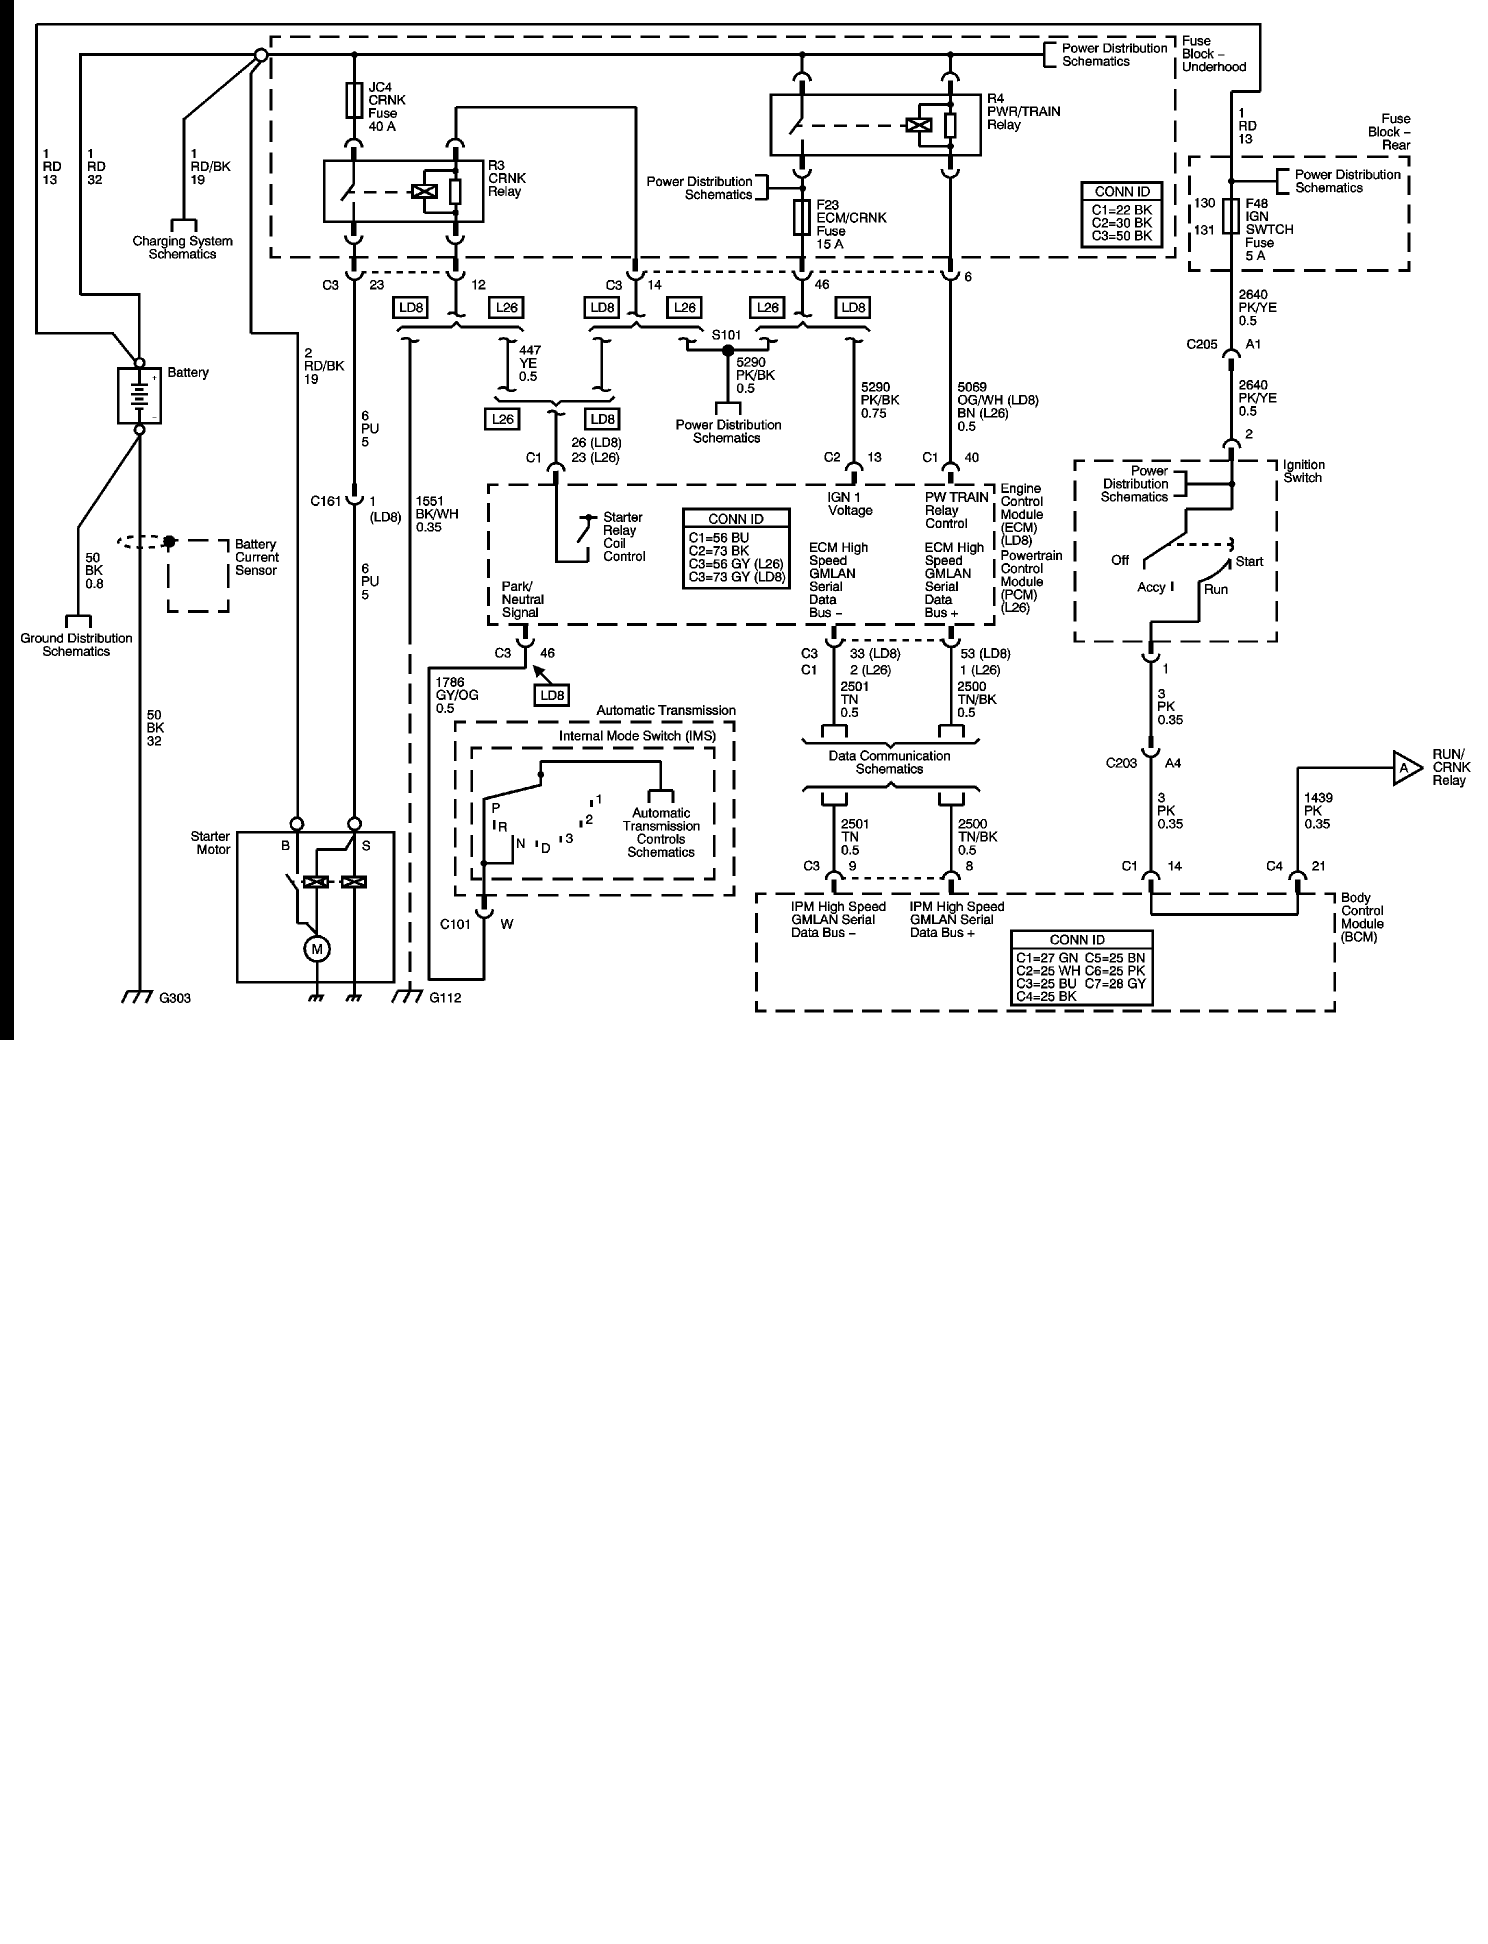 2013 Buick Enclave Wiring Diagram - Wiring Diagram Mega on ductwork schematics, motor schematics, engine schematics, tube amp schematics, amplifier schematics, plumbing schematics, ecu schematics, transformer schematics, generator schematics, piping schematics, design schematics, computer schematics, ignition schematics, wire schematics, circuit schematics, ford diagrams schematics, engineering schematics, electrical schematics, electronics schematics, transmission schematics,